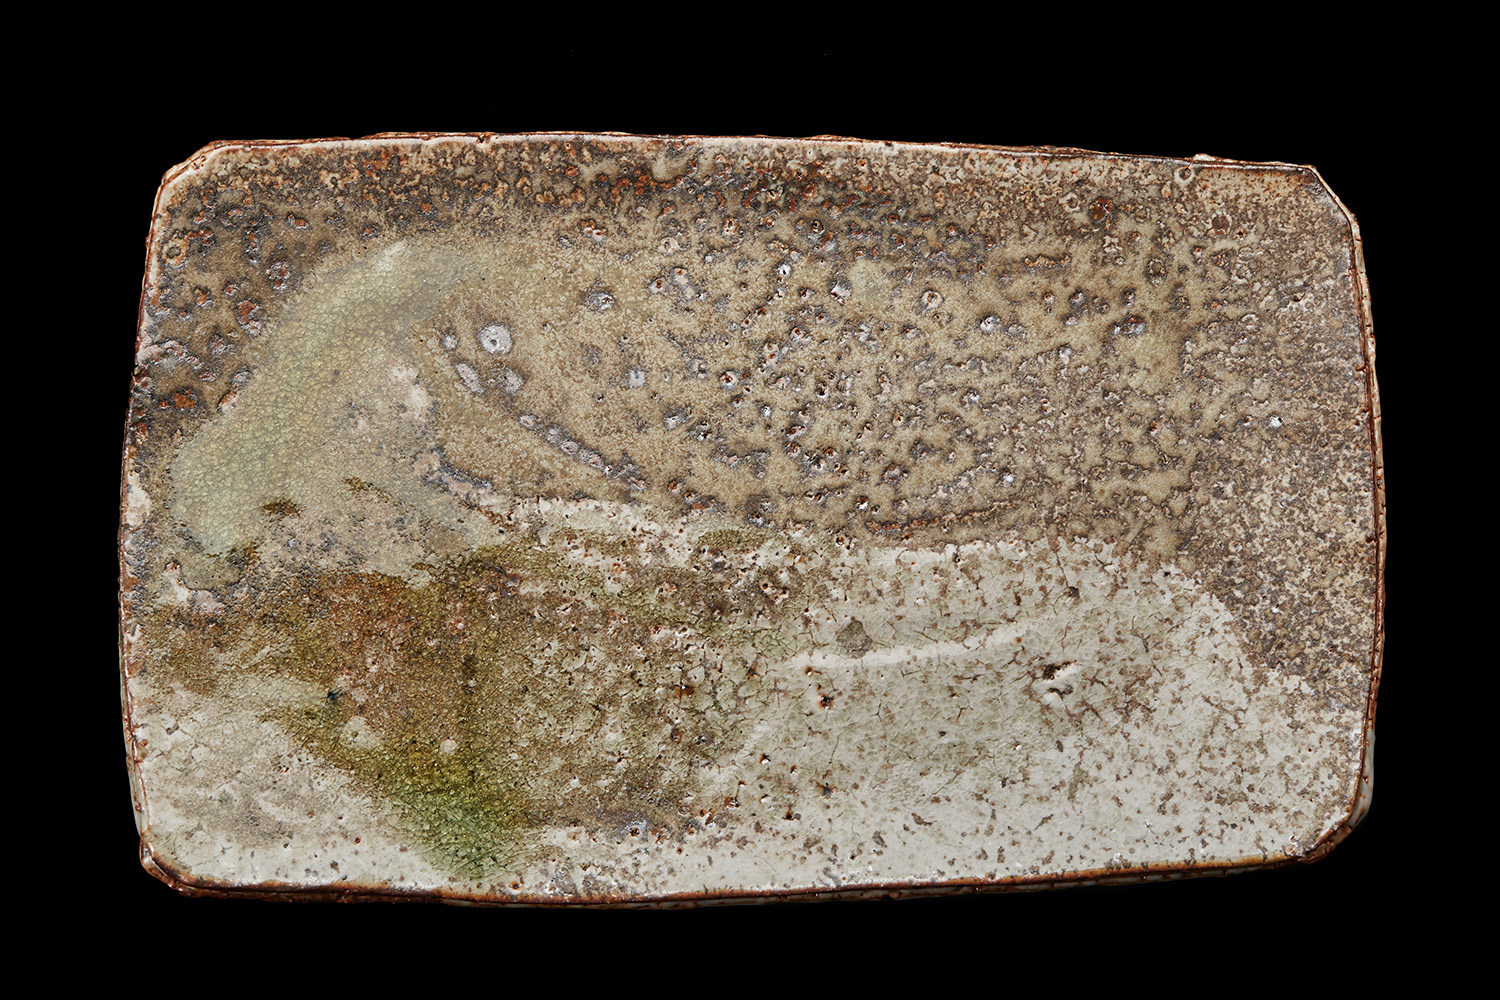 Mike Weber  Large Platter #2   Woodfired ceramics w/ natural ash glaze 14.25 x 9 x 1 inches 36.2 x 22.9 x 2.5 cm MWe 5